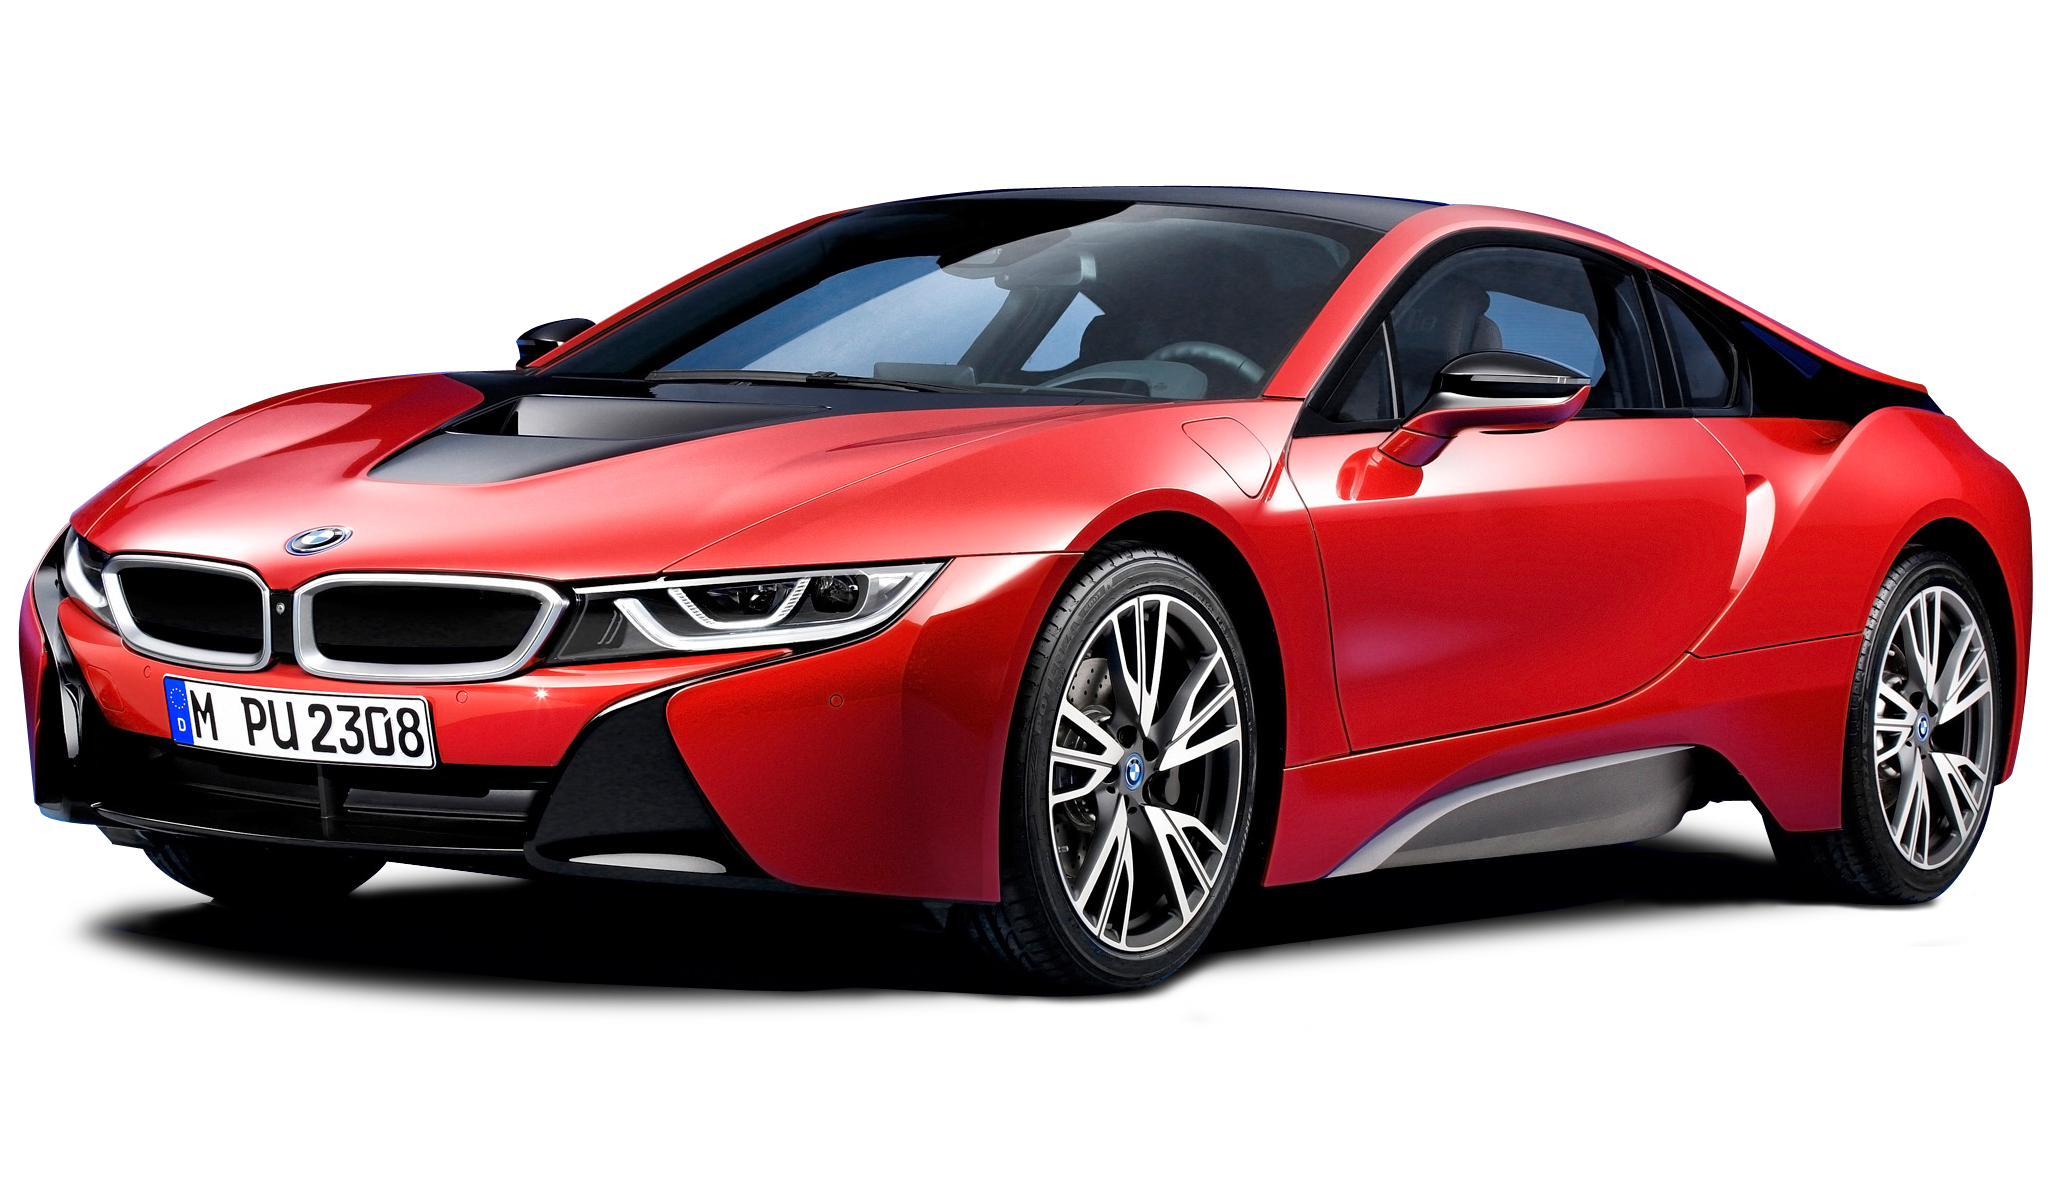 Bmw Car Png Image Purepng Free Transparent Cc0 Png Image Library